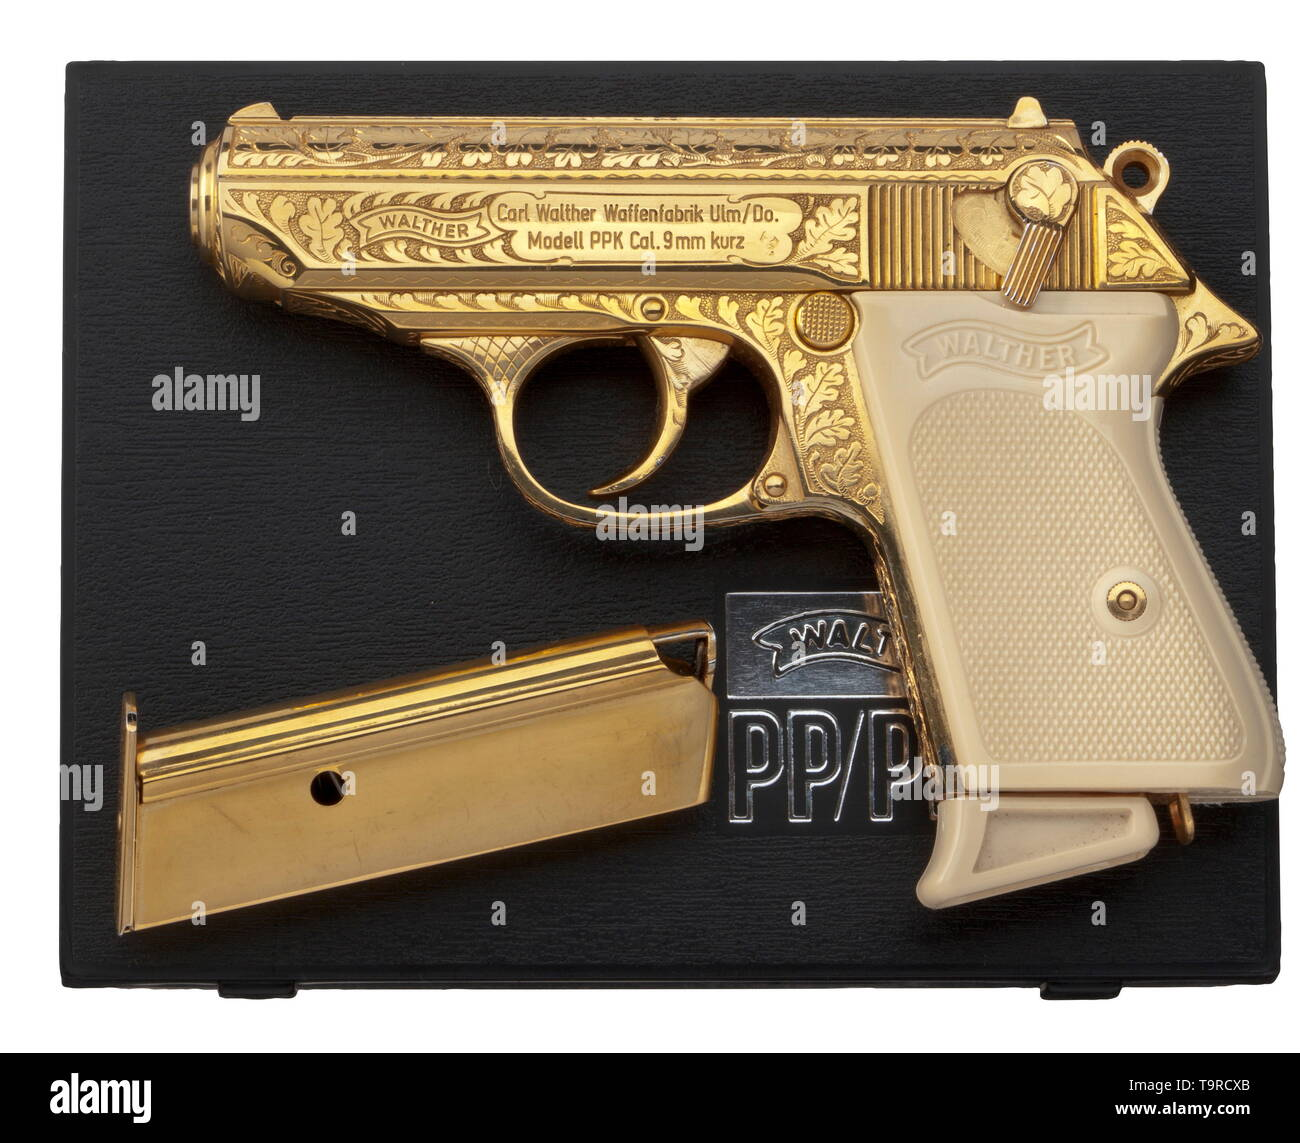 Walther Ppk Stock Photos & Walther Ppk Stock Images - Alamy